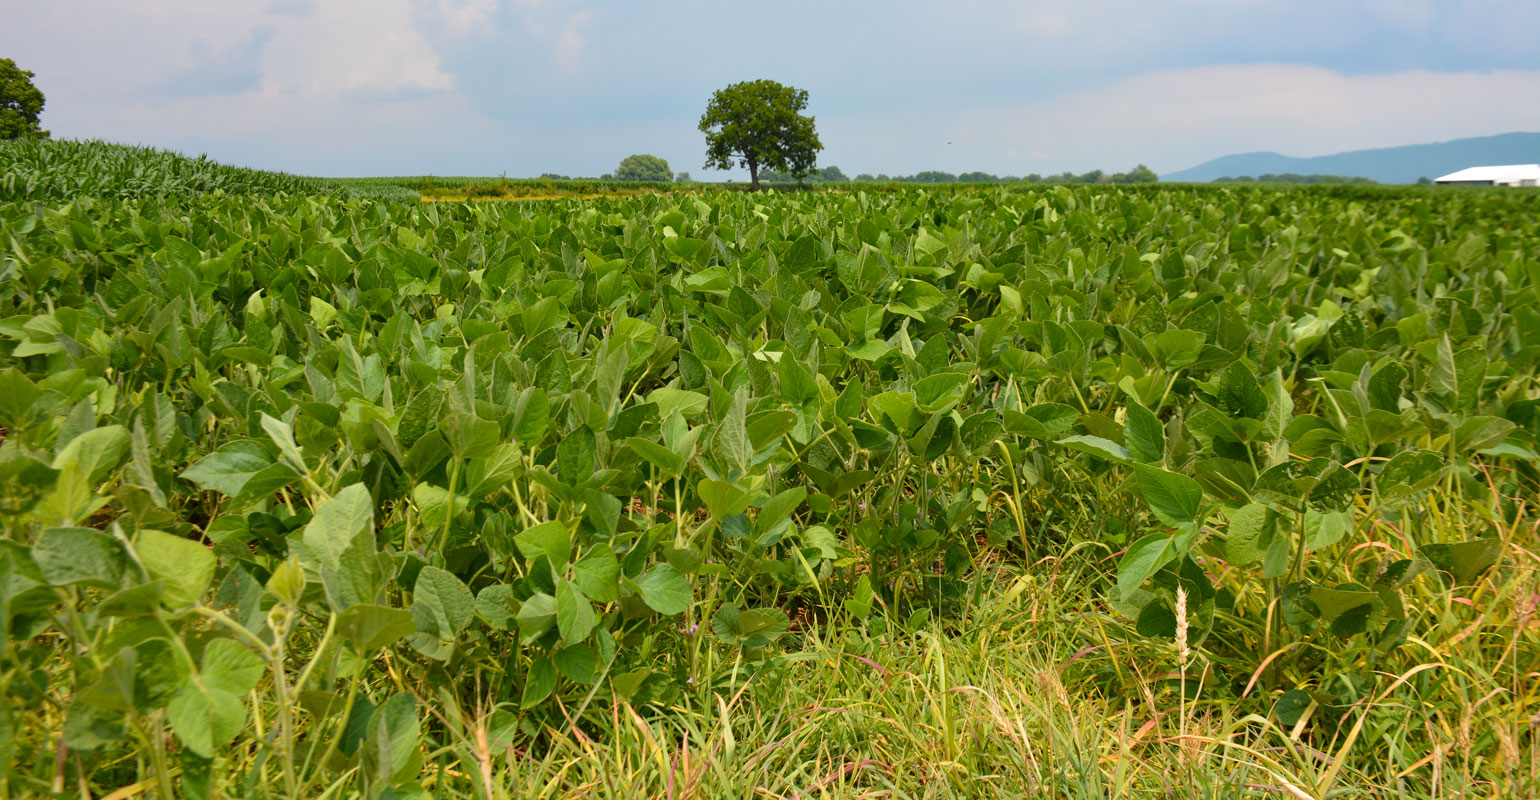 Ground-level view of soybean field